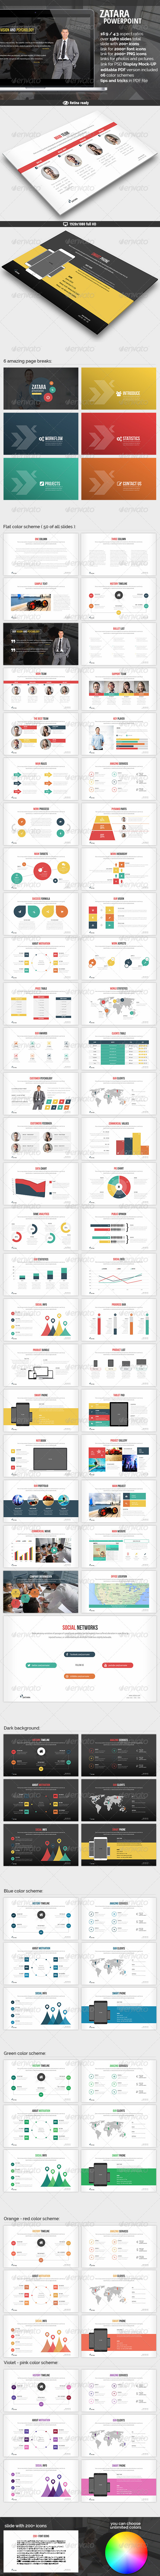 GraphicRiver Zatara Business Powerpoint Presentation 8026805